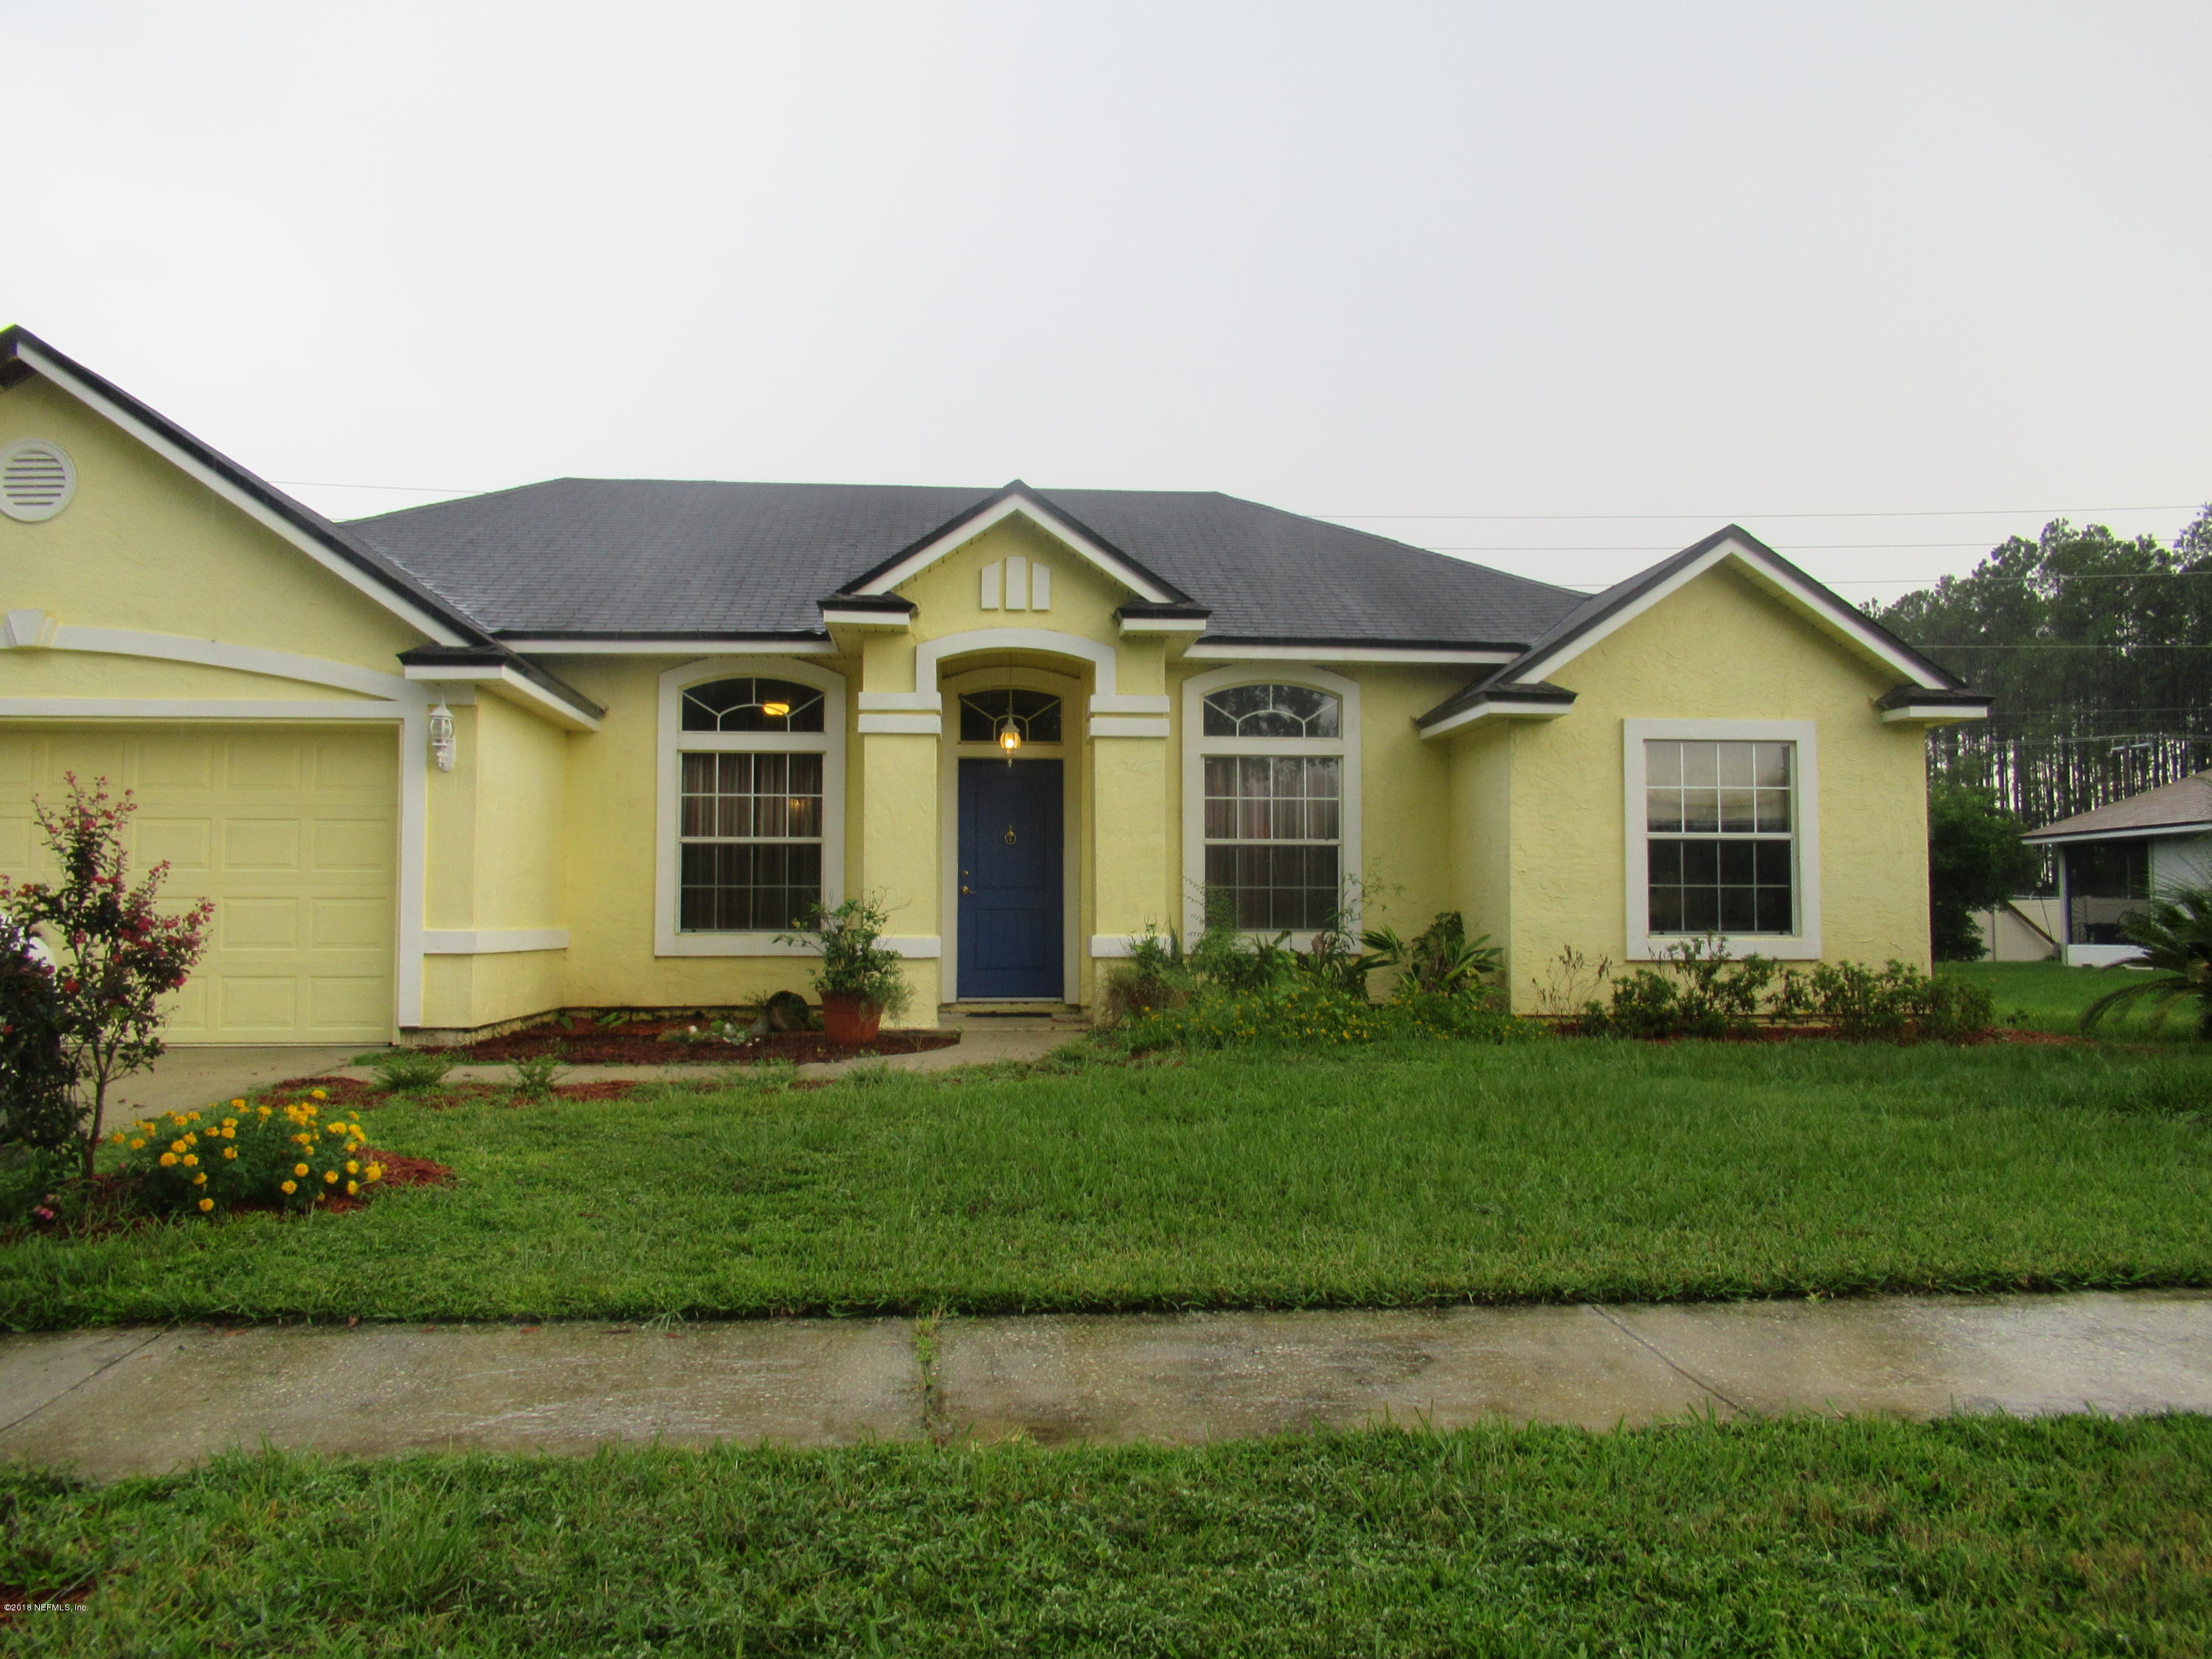 809 SOUTHERN BELLE, ST JOHNS, FLORIDA 32259, 3 Bedrooms Bedrooms, ,2 BathroomsBathrooms,Residential - single family,For sale,SOUTHERN BELLE,947316